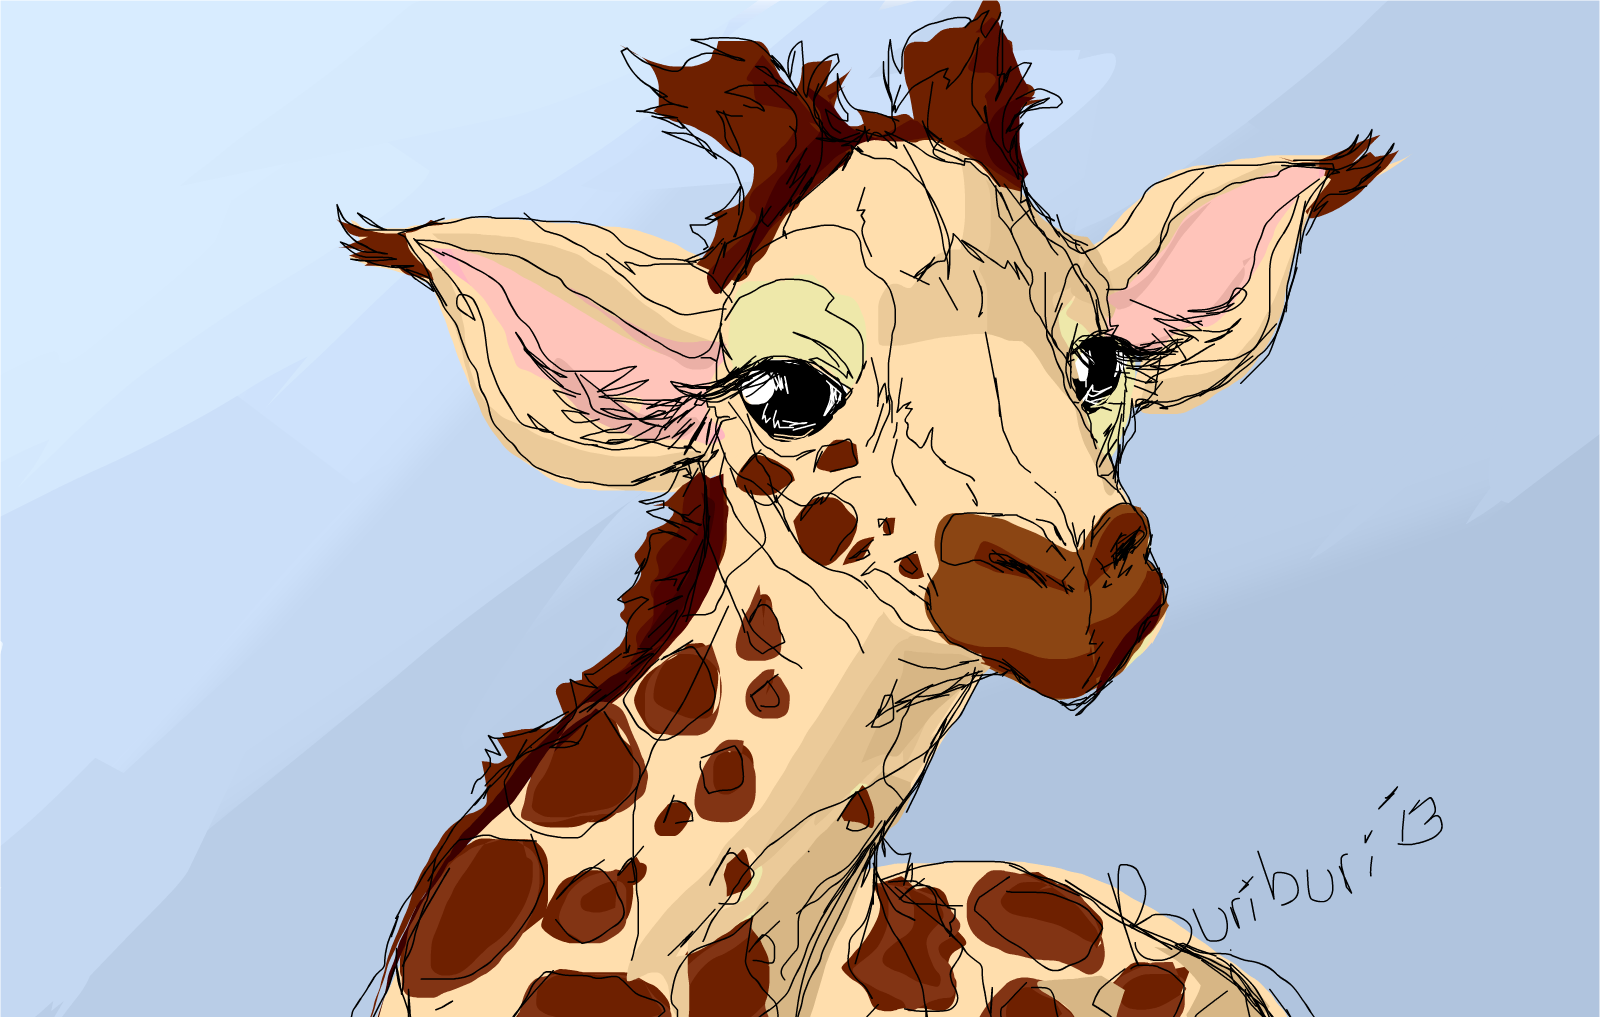 Sketch of a giraffe